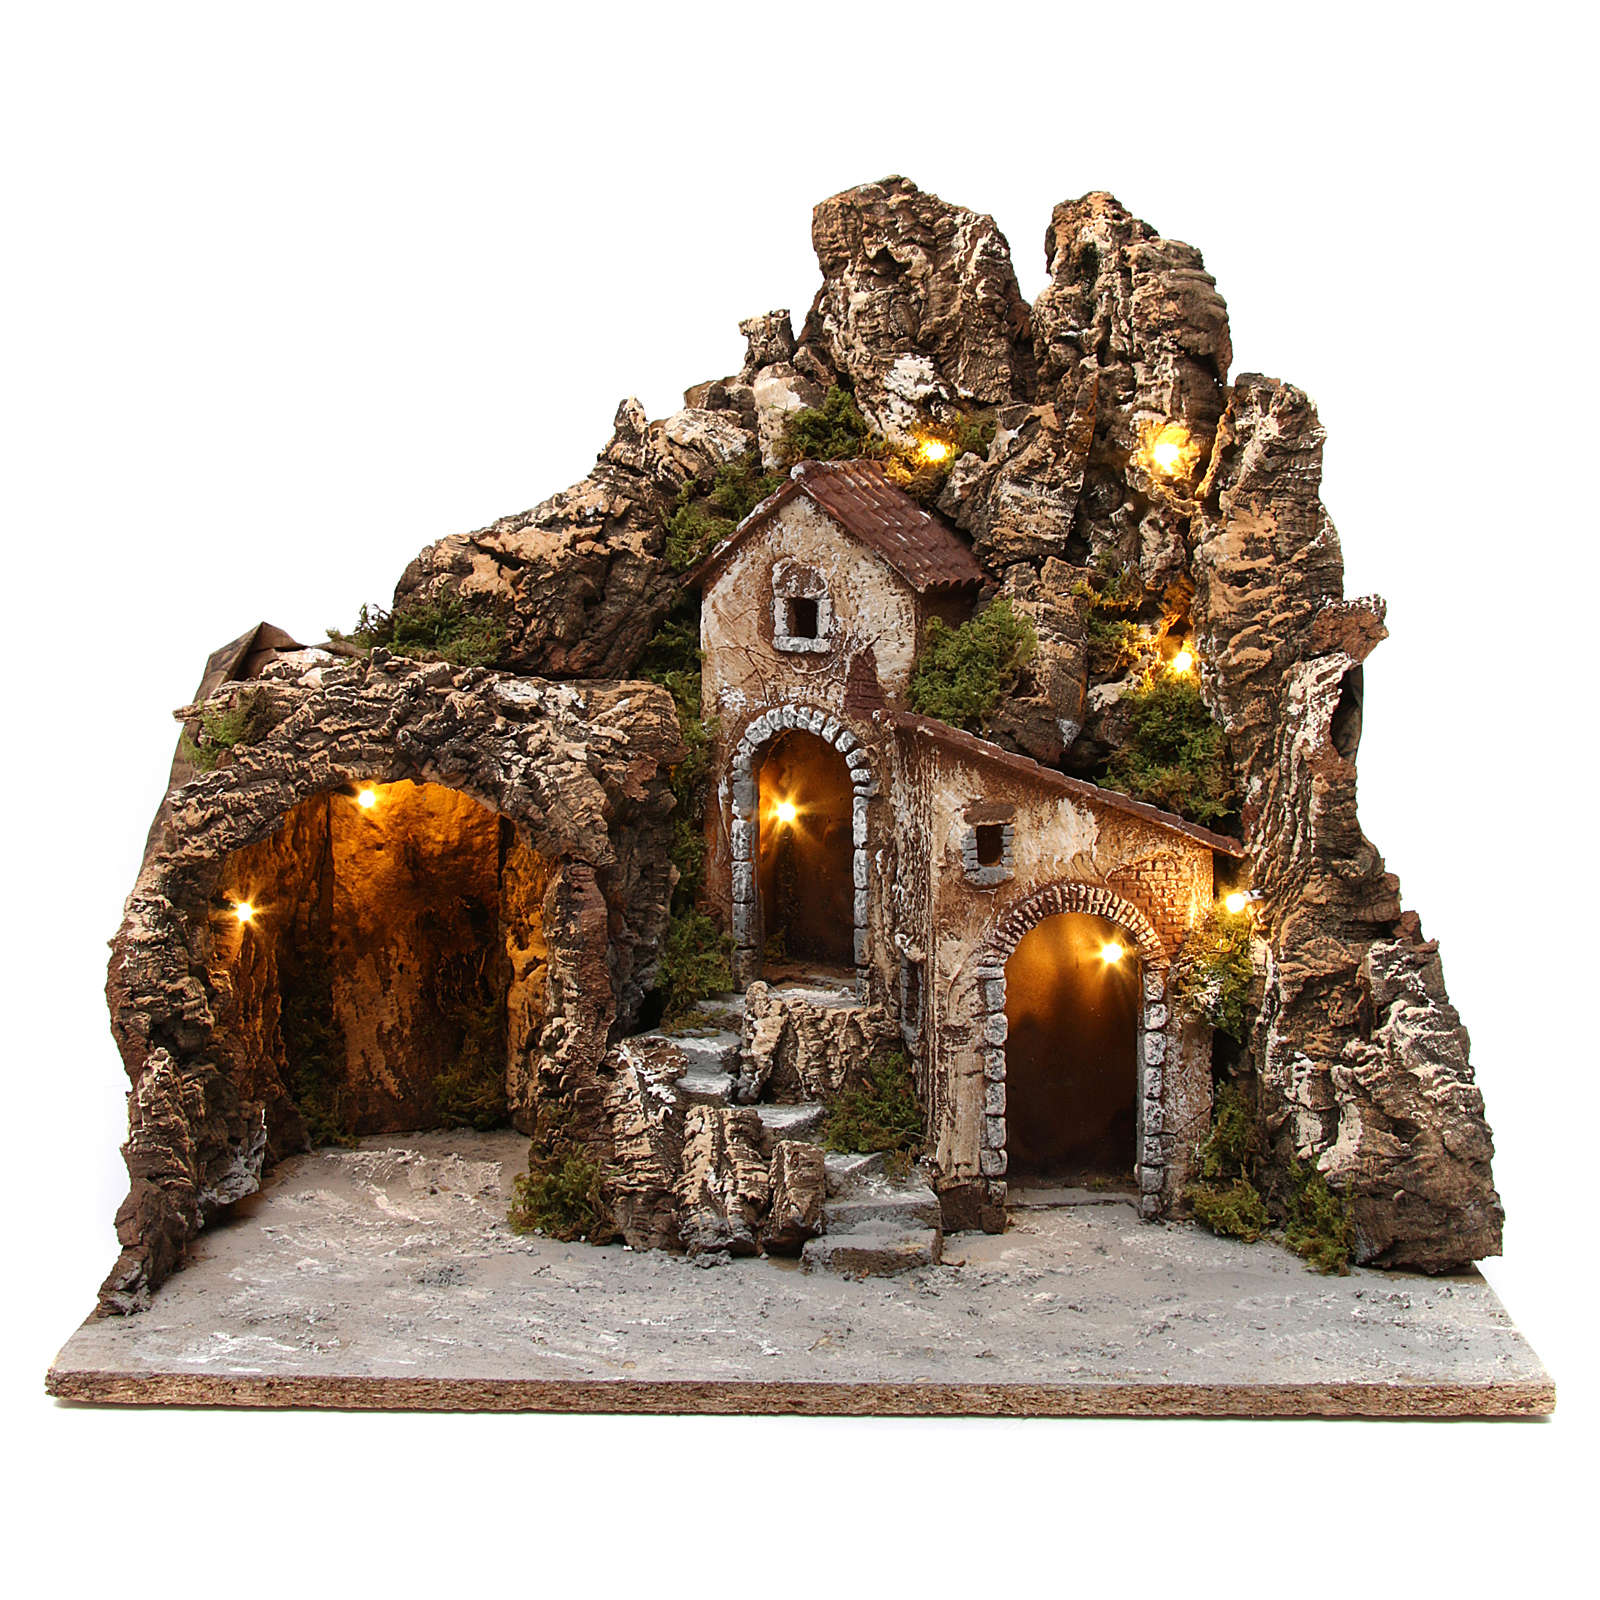 Illuminated nativity scene with cave and small houses 55X60X60 cm wood and cork 4